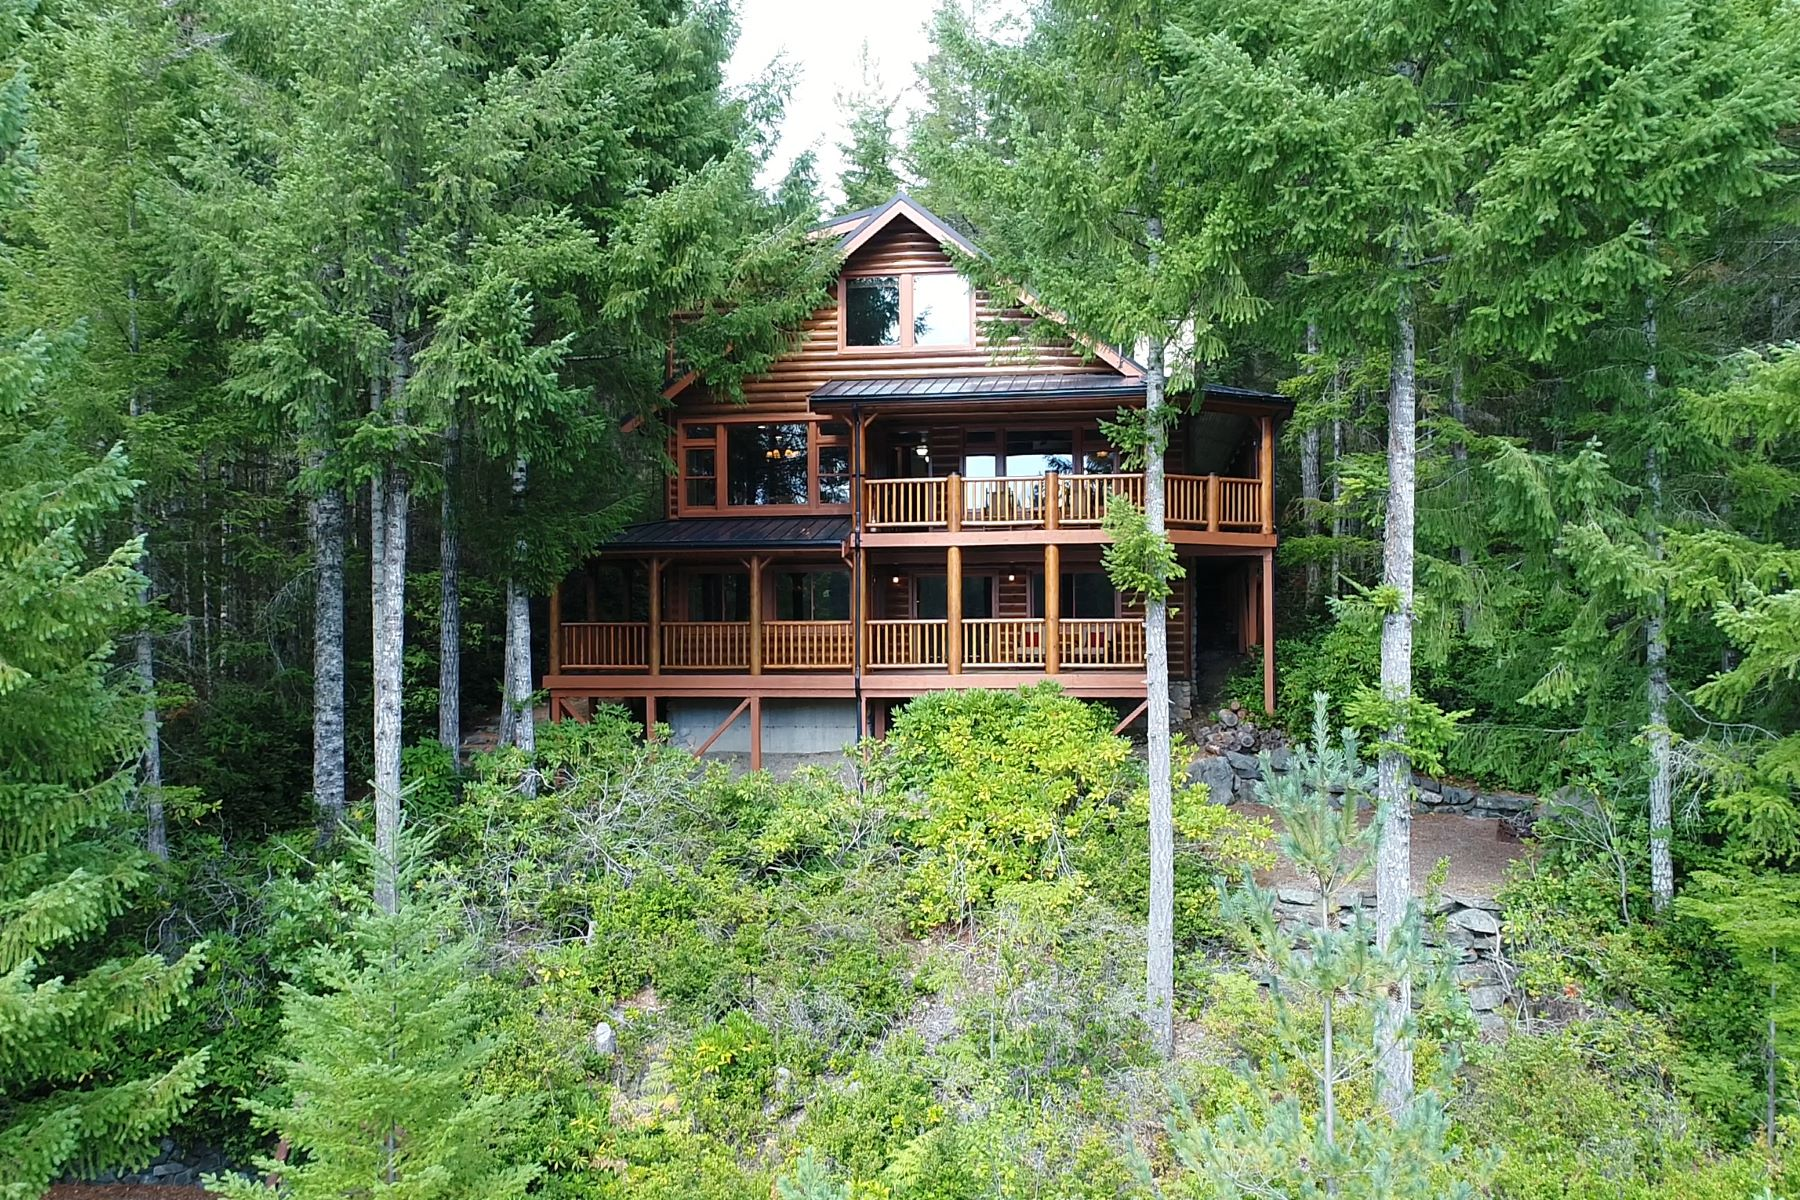 Single Family Home for Sale at Lakeside Cabin 370 Windflower Way Tahuya, Washington 98588 United States